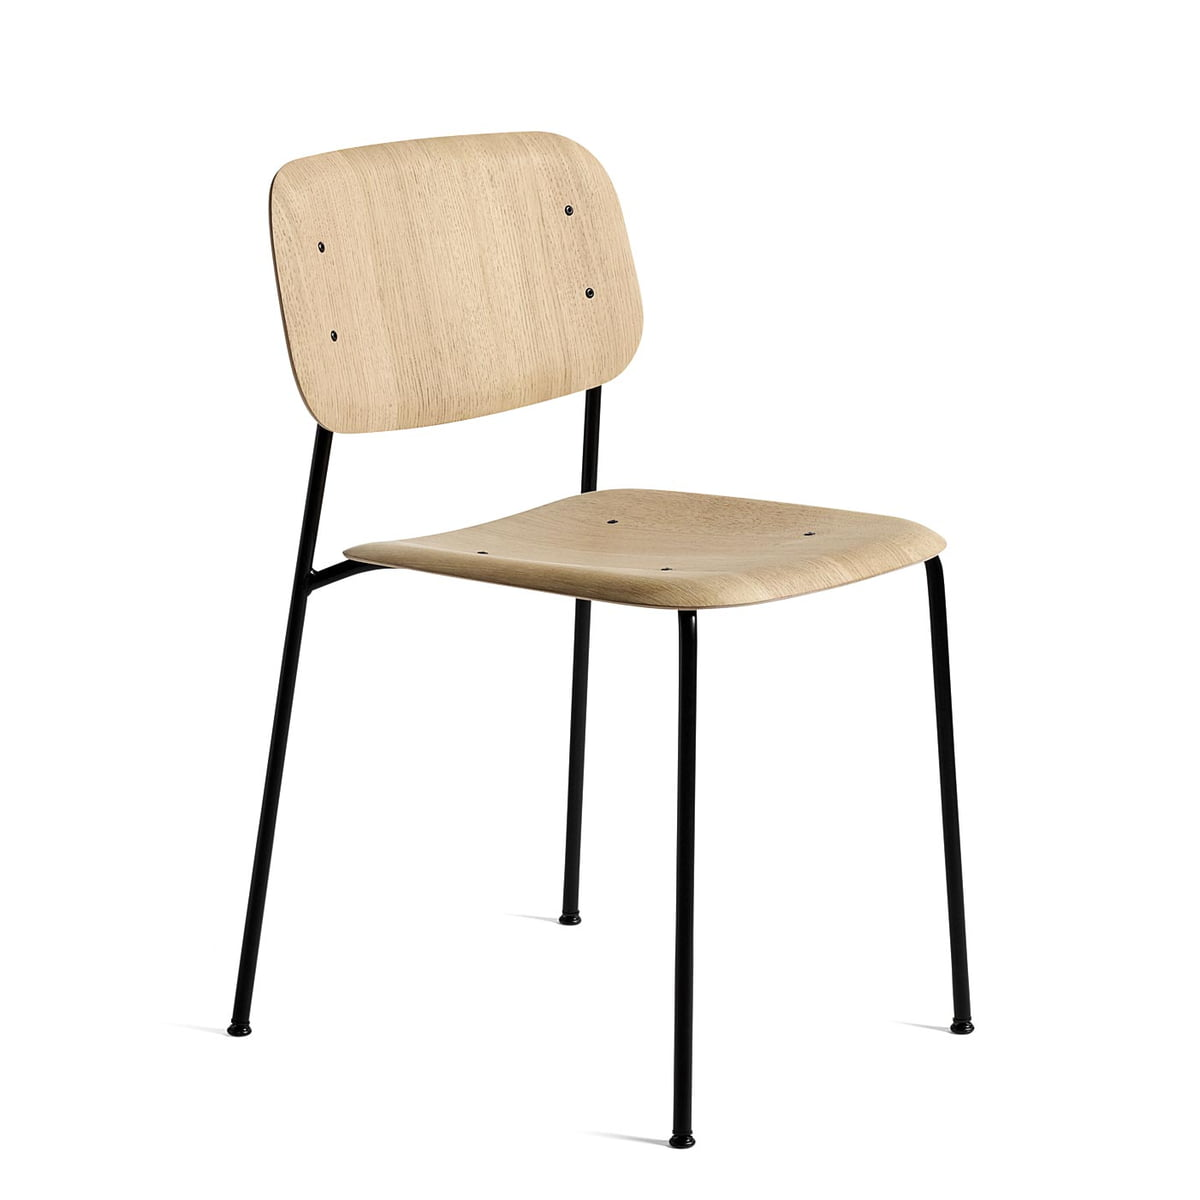 Soft edge 10 chair by hay connox for Connox com